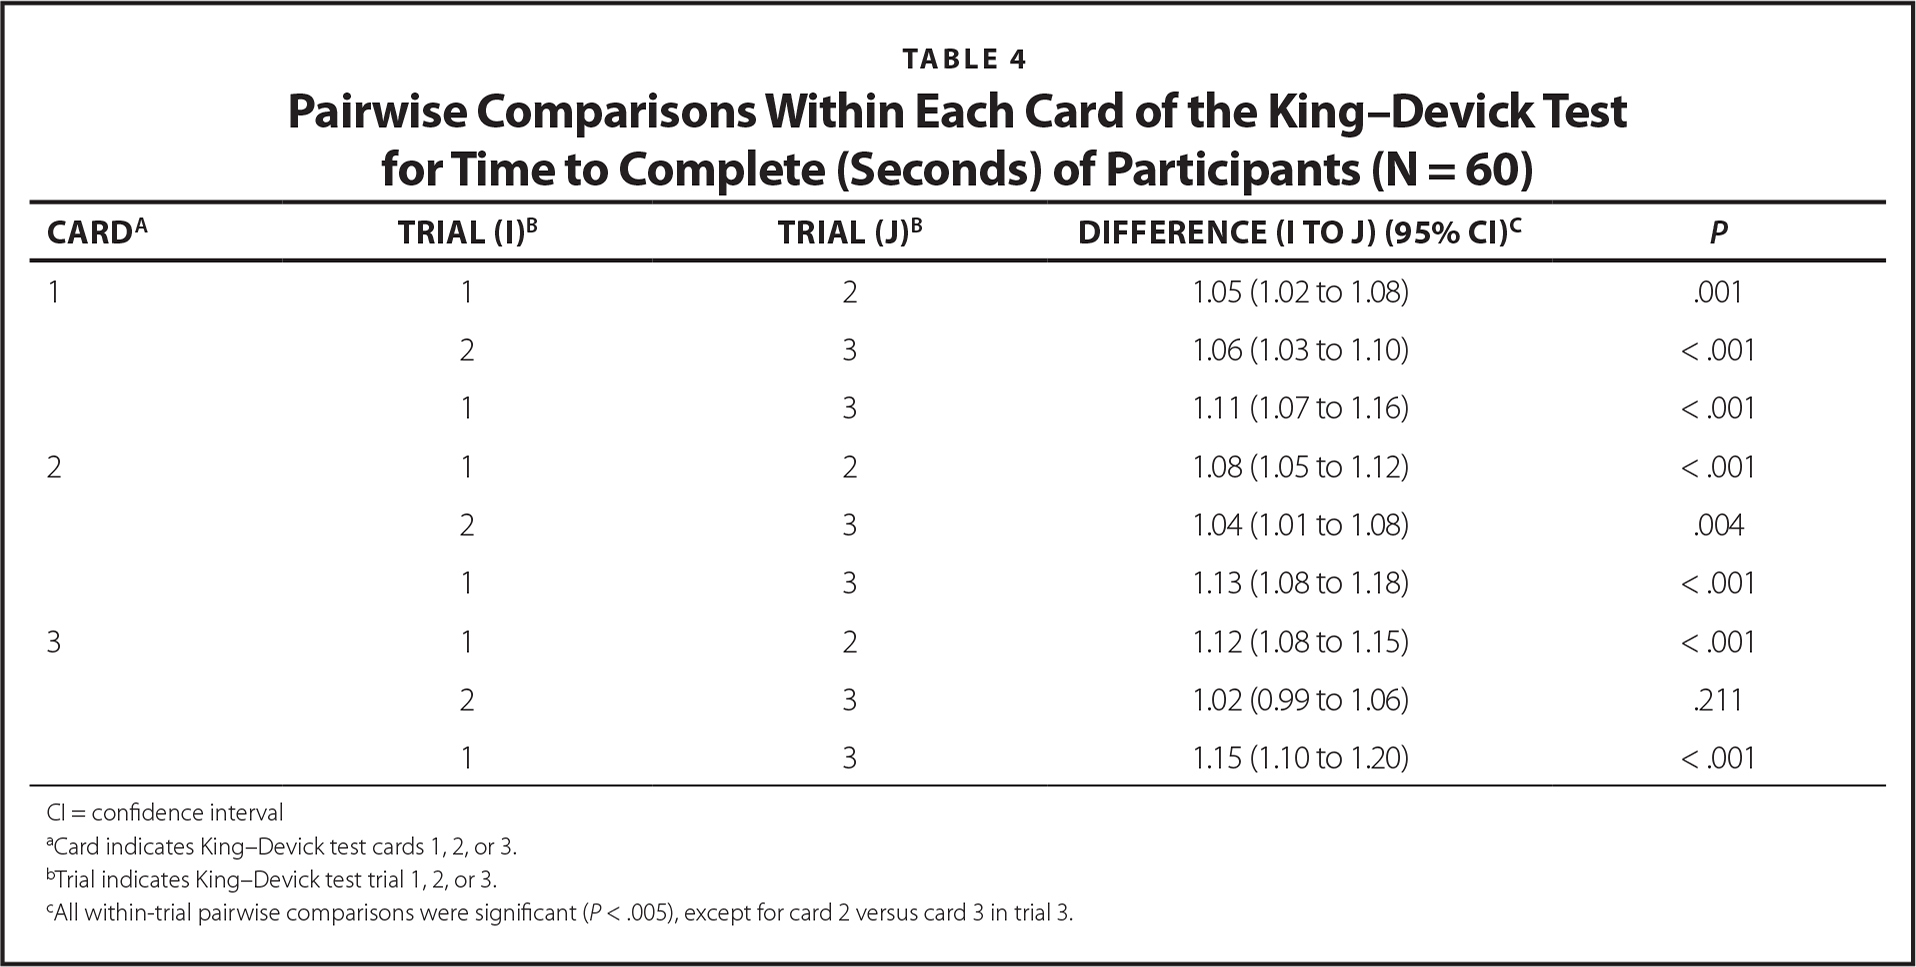 Pairwise Comparisons Within Each Card of the King–Devick Test for Time to Complete (Seconds) of Participants (N = 60)